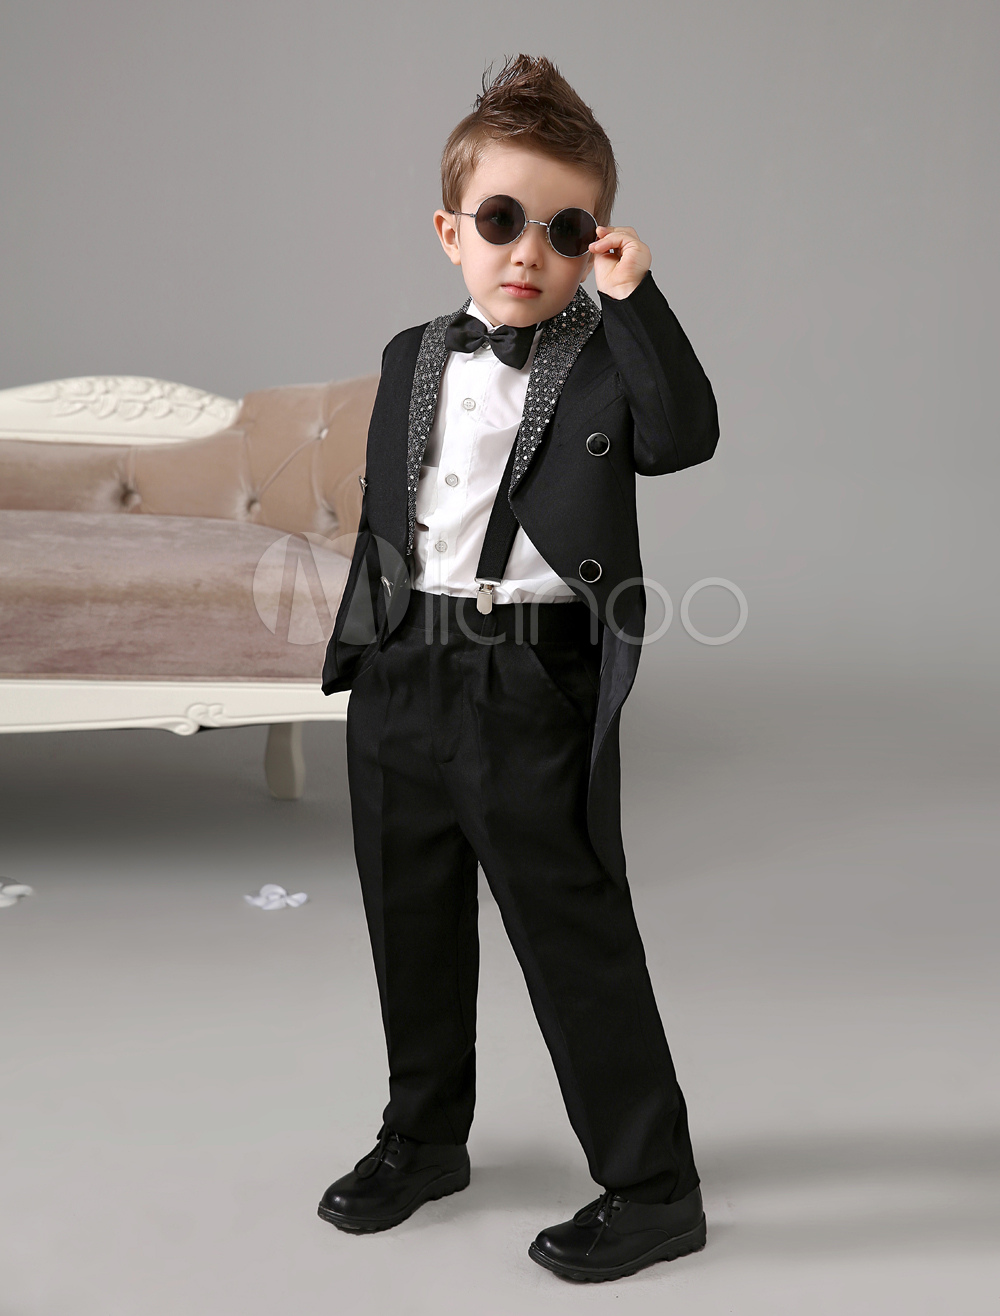 99e79211f Black Boy Suit Kids Wedding Tuxedo Jacket Pants Shirts Bow Tie Baby Boy  Suits 4 Pcs Ring Bearer Suit Set